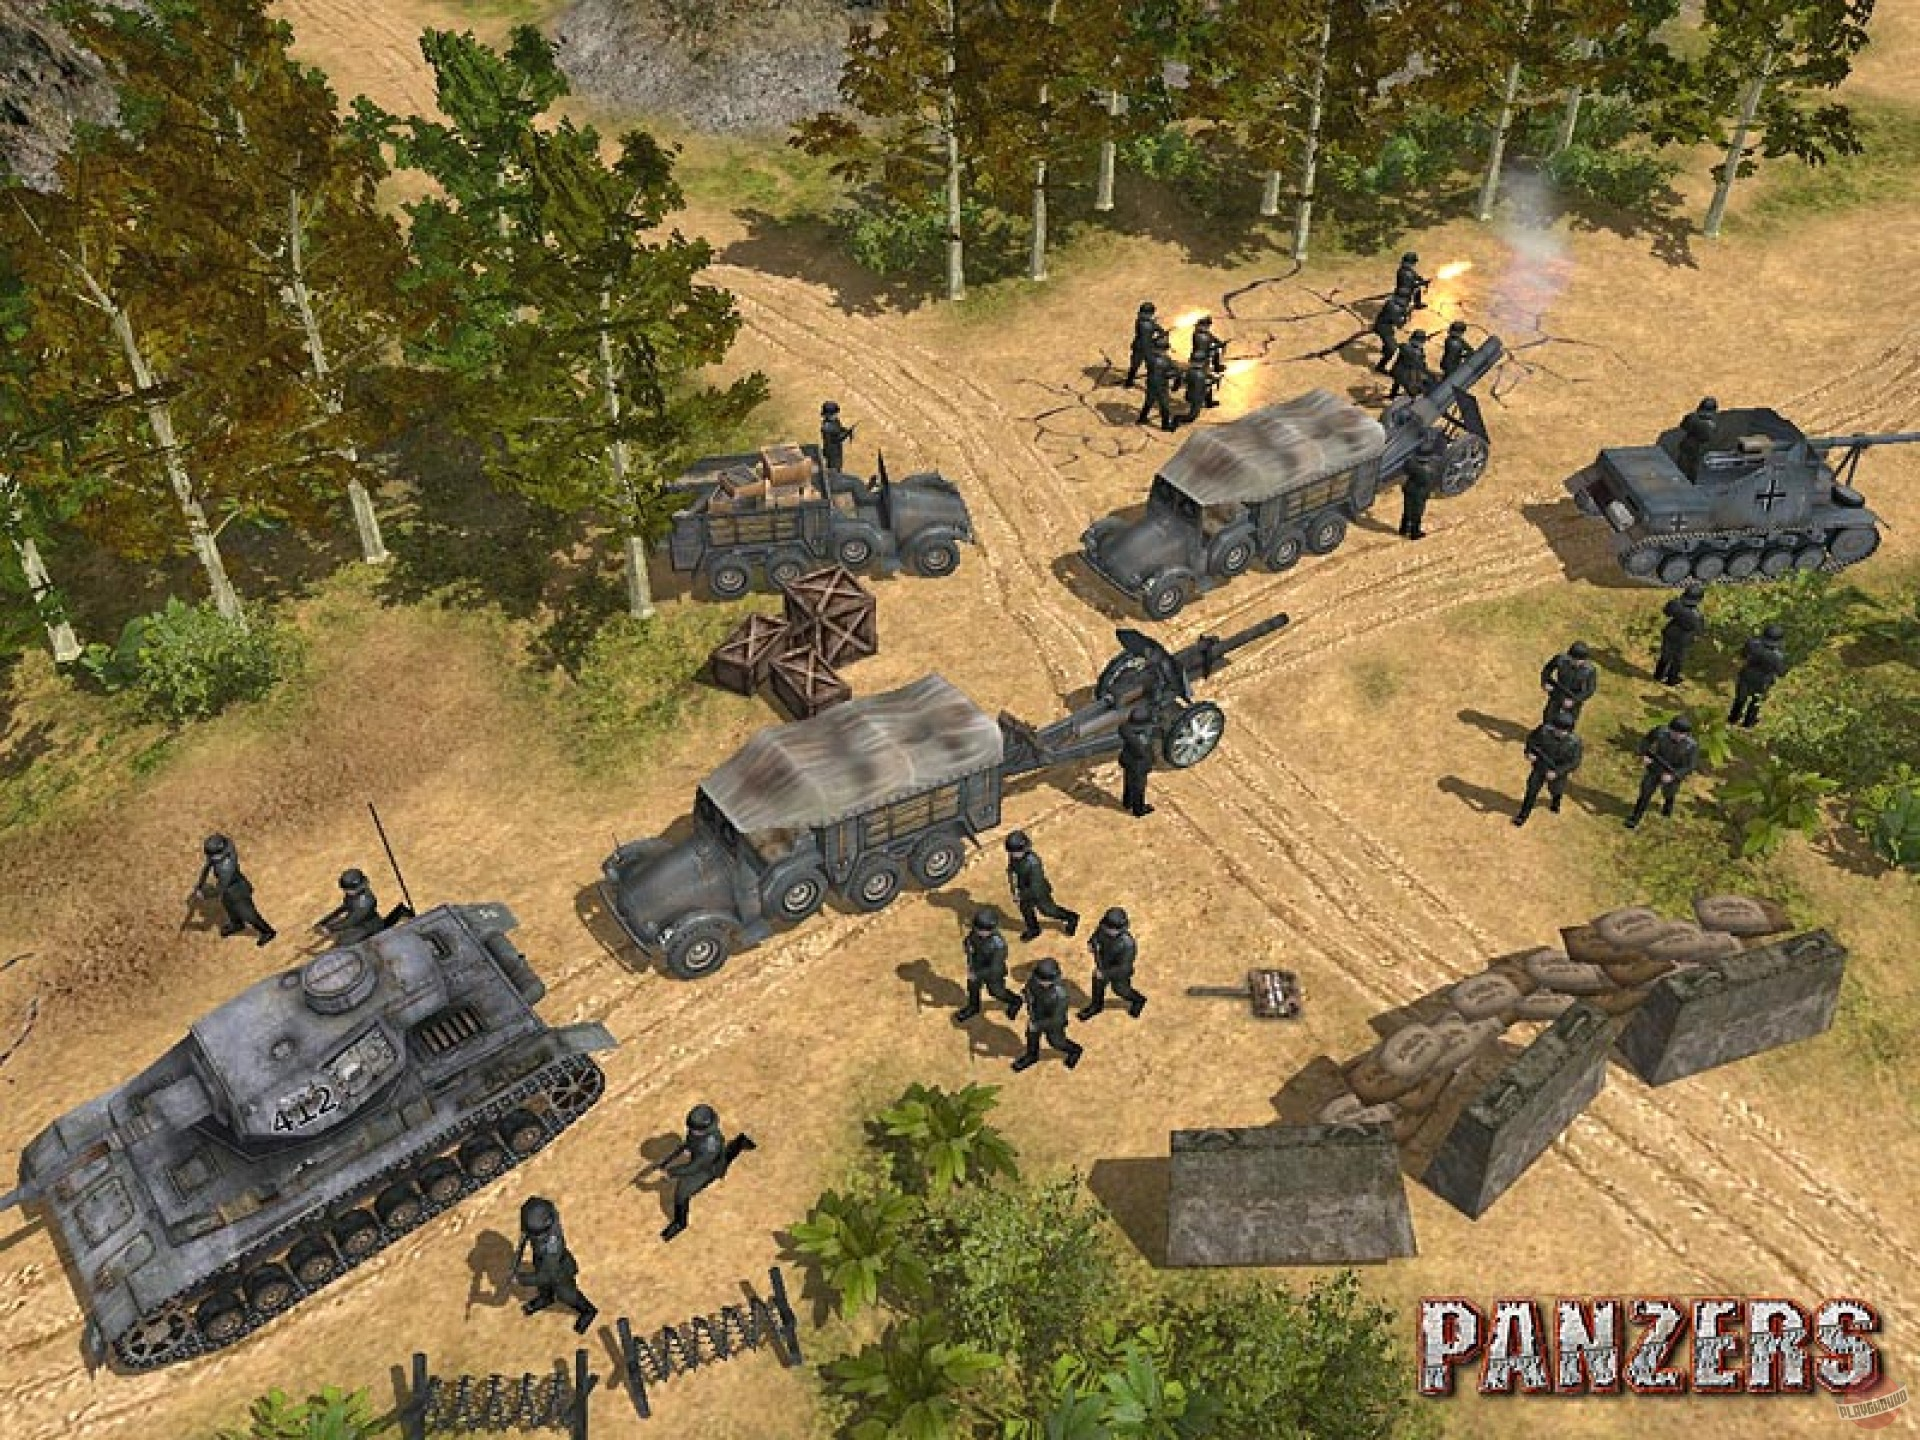 codename panzers phase one maps s staffhunter. Black Bedroom Furniture Sets. Home Design Ideas